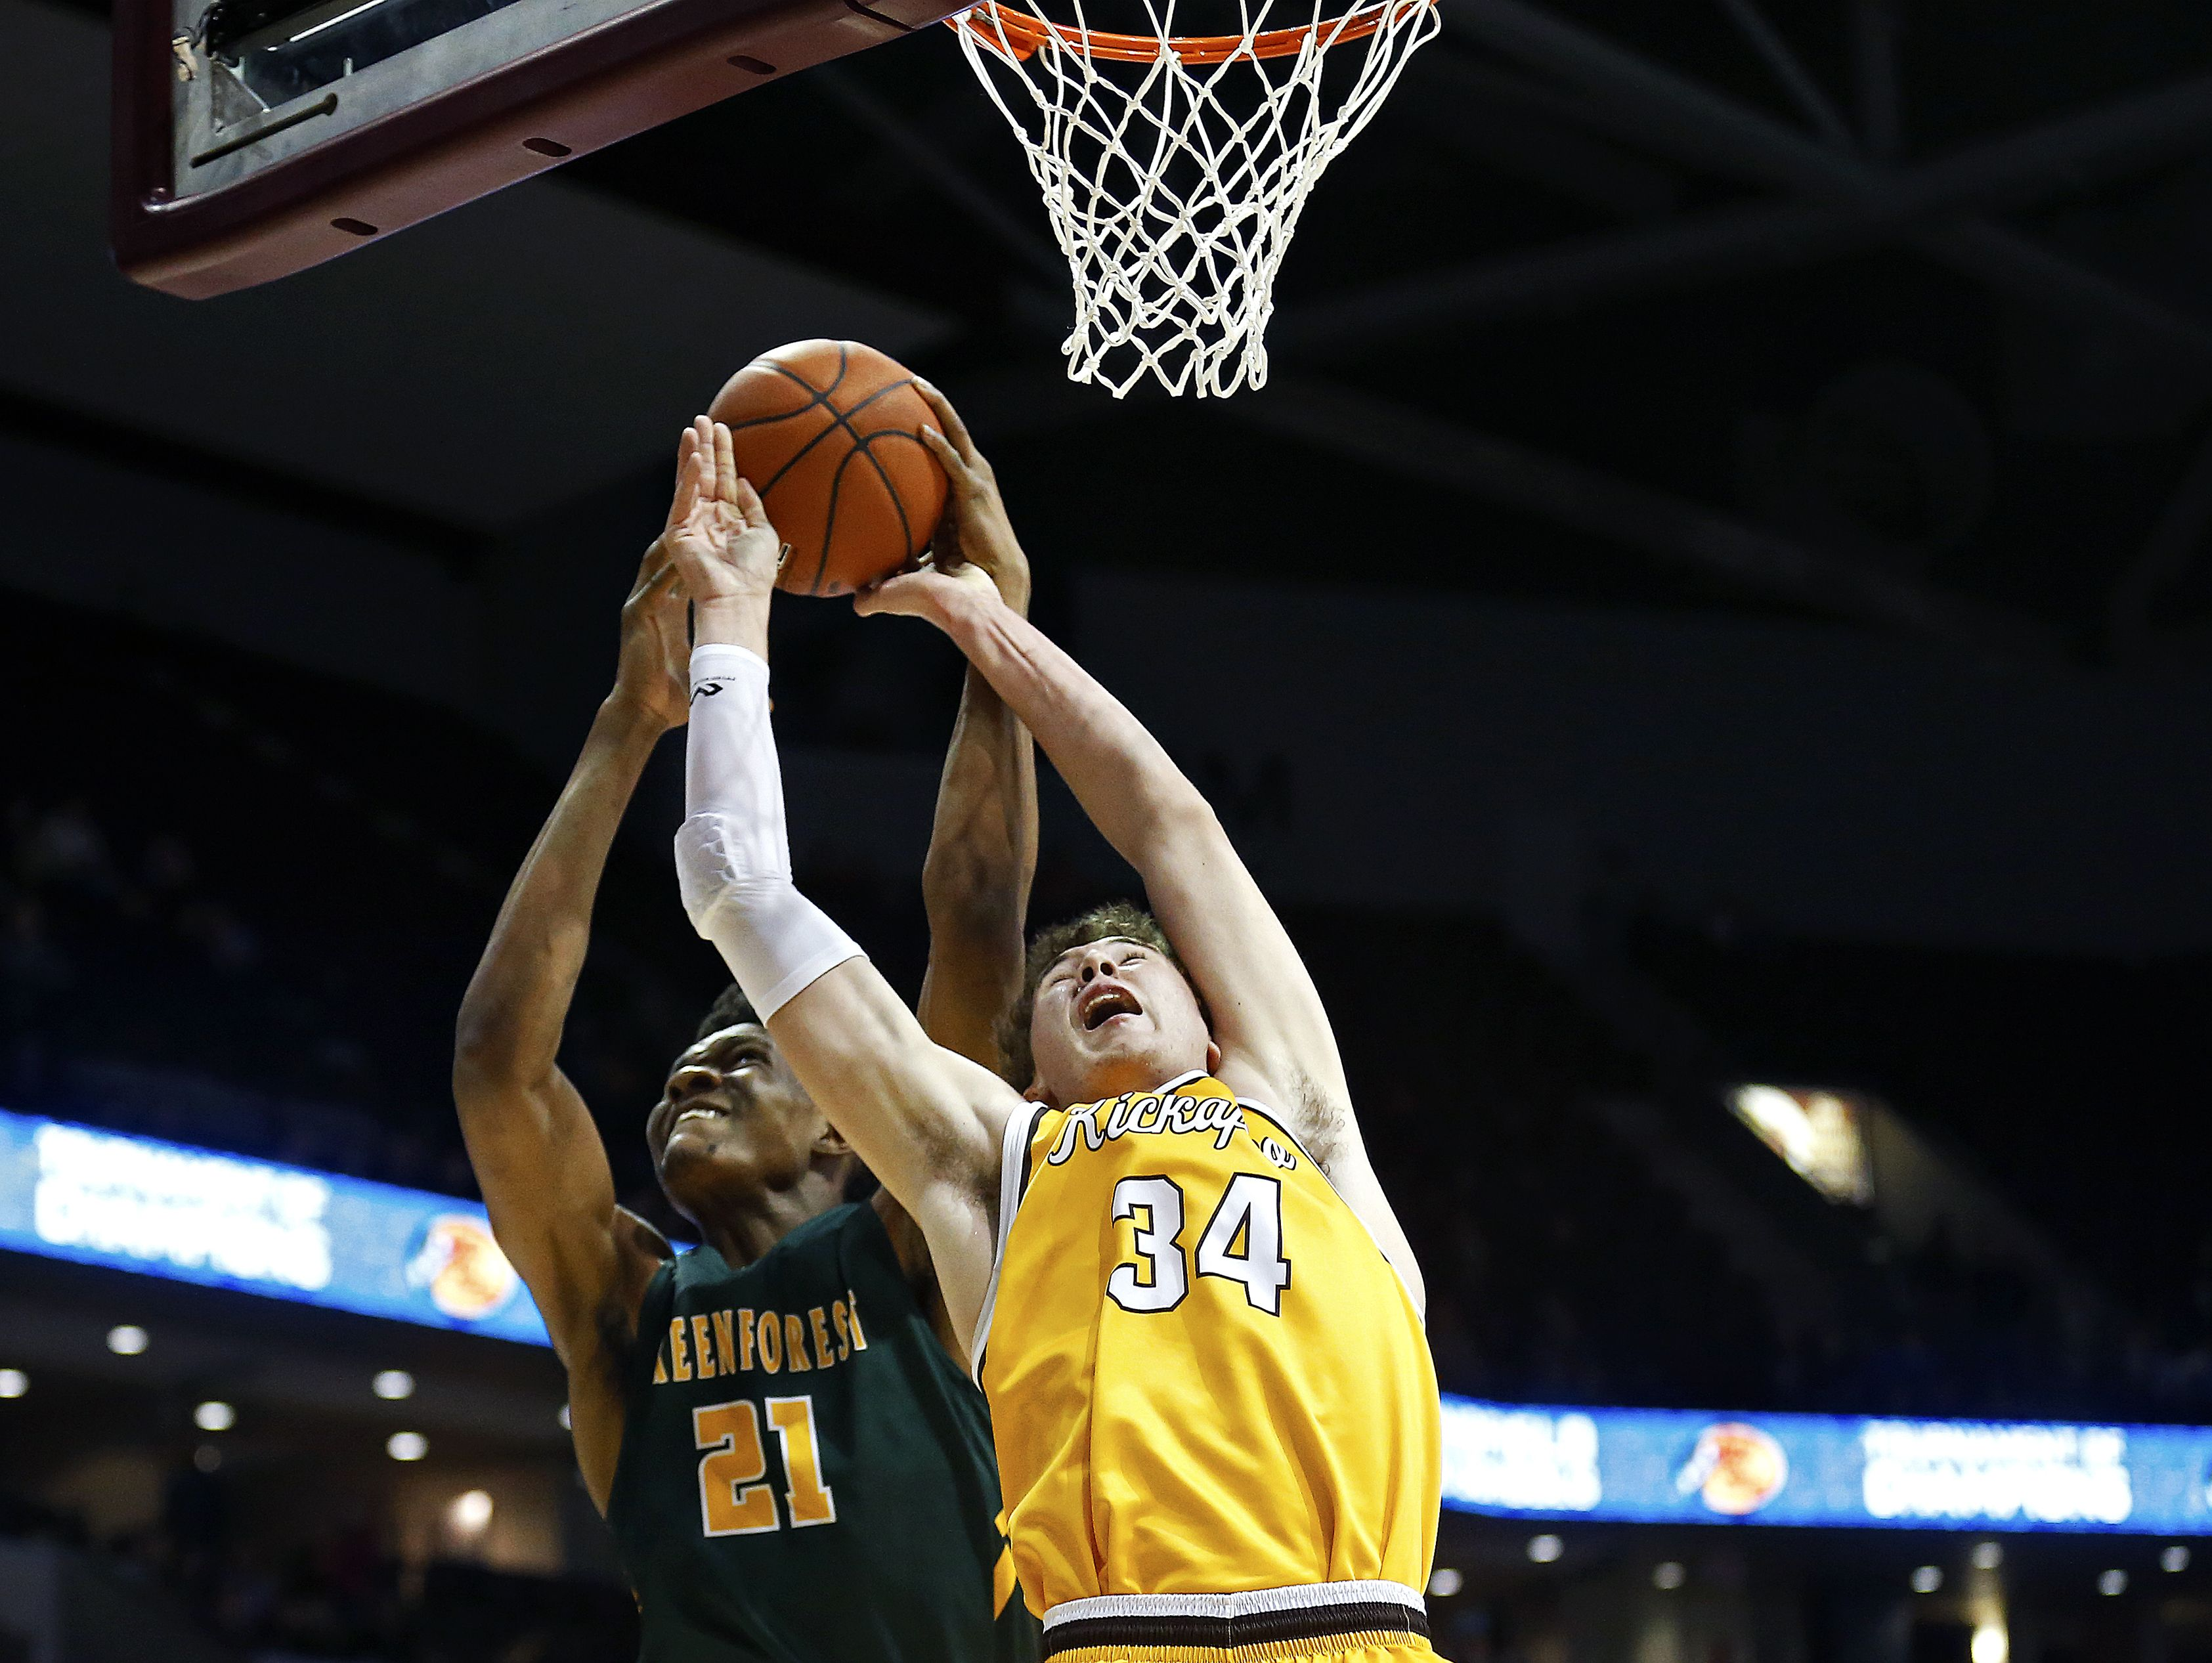 Greenforest Christian Academy (Decatur, Ga.) center Ikey Obiagu (21) and Kickapoo High School (Springfield, Mo.) center Jared Ridder (34) fight for a rebound during first quarter action of the 2017 Bass Pro Tournament of Champions high school basketball game between the Kickapoo High School Chiefs (Springfield, Mo.) and the Greenforest Christian Academy Eagles (Decatur, Ga.) at JQH Arena in Springfield, Mo. on Jan. 13, 2017.